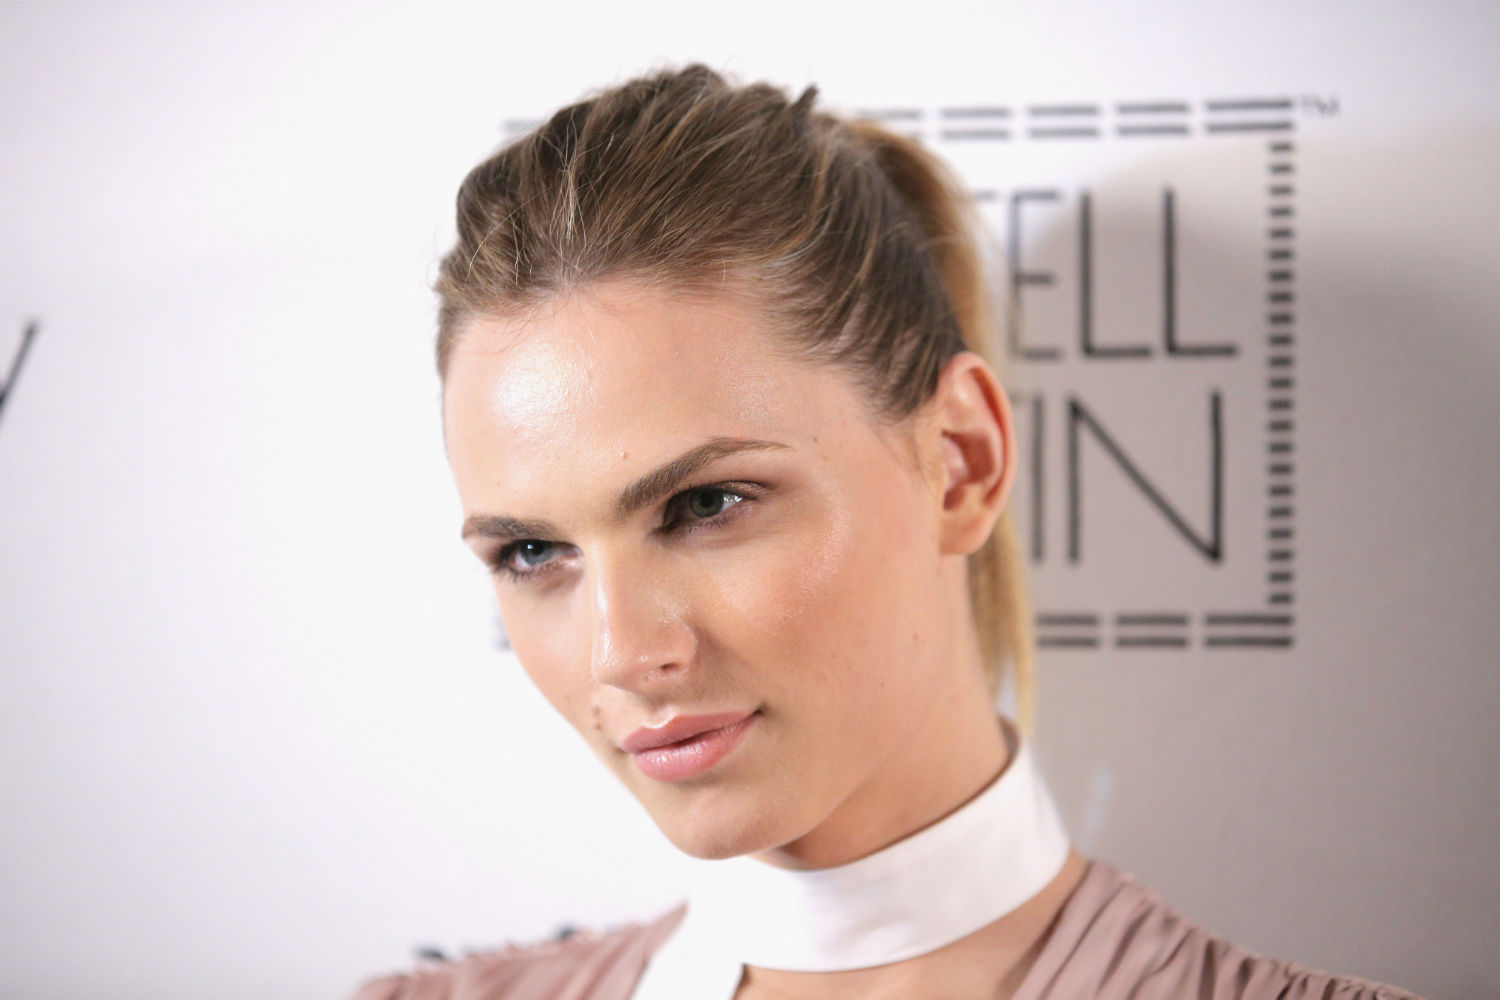 Trans model Andreja Pejic on dating: I don't have to worry about coming out · PinkNews